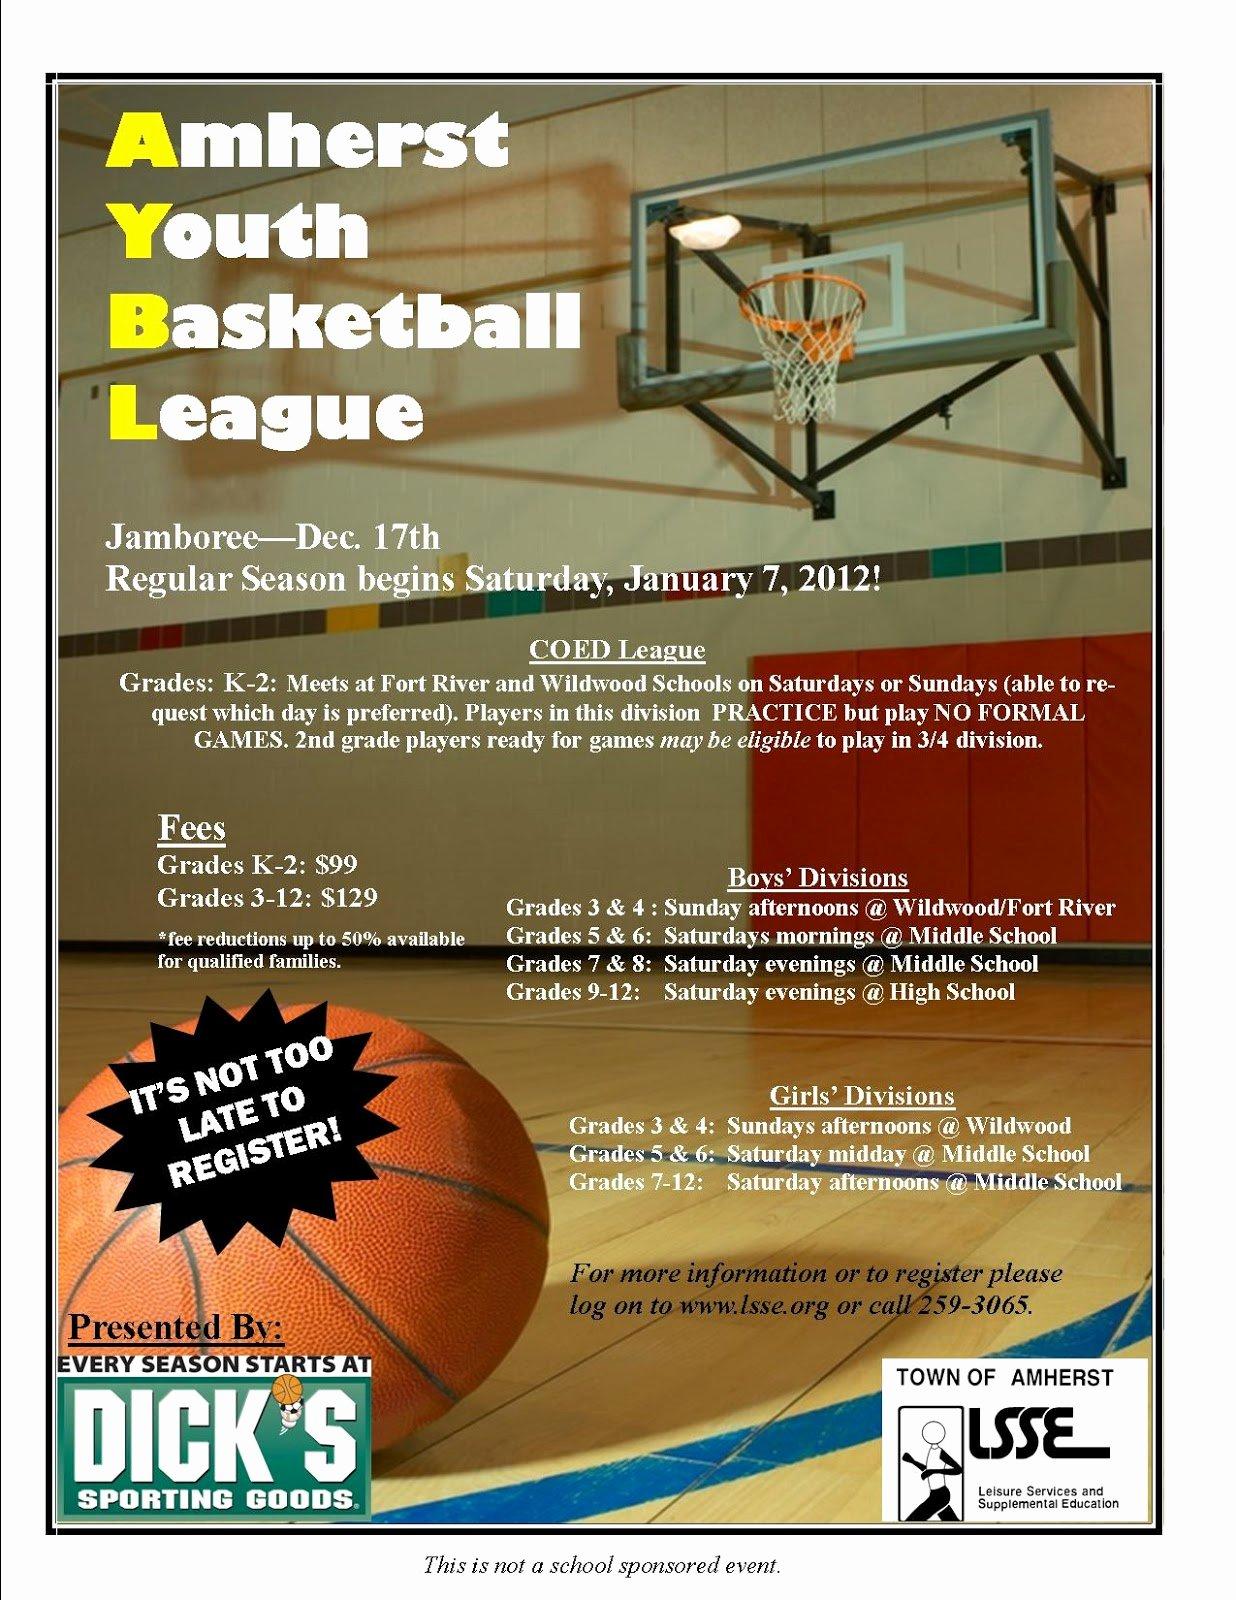 Basketball Camp Flyer Template New Basketball Camp Flyers Templates Frompo